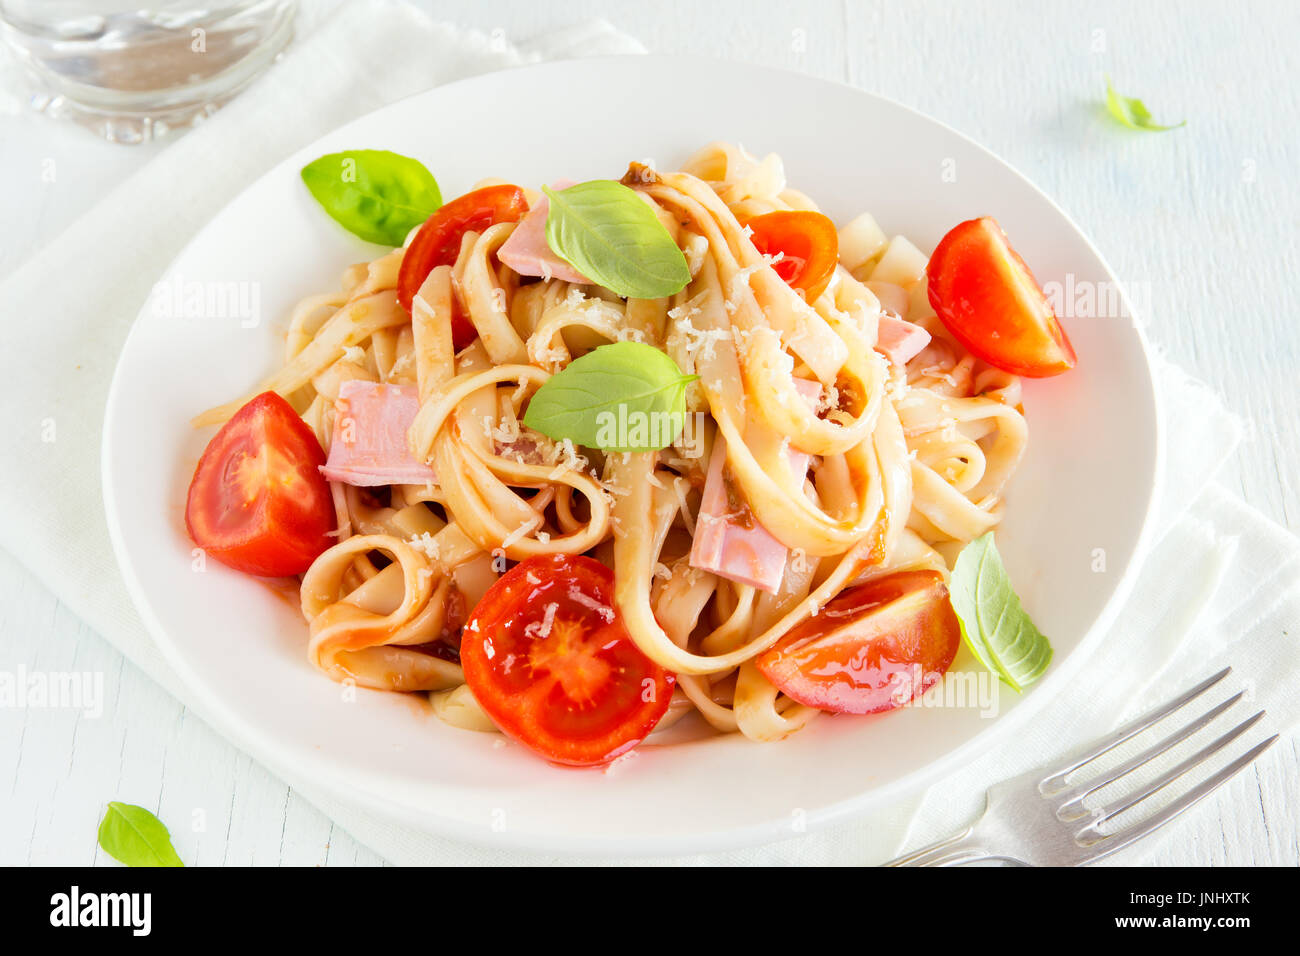 Tagliatelle pasta with ham, tomato sauce, cherry tomatoes and basil leaves on white plate - homemade delicious tagliatelle - Stock Image